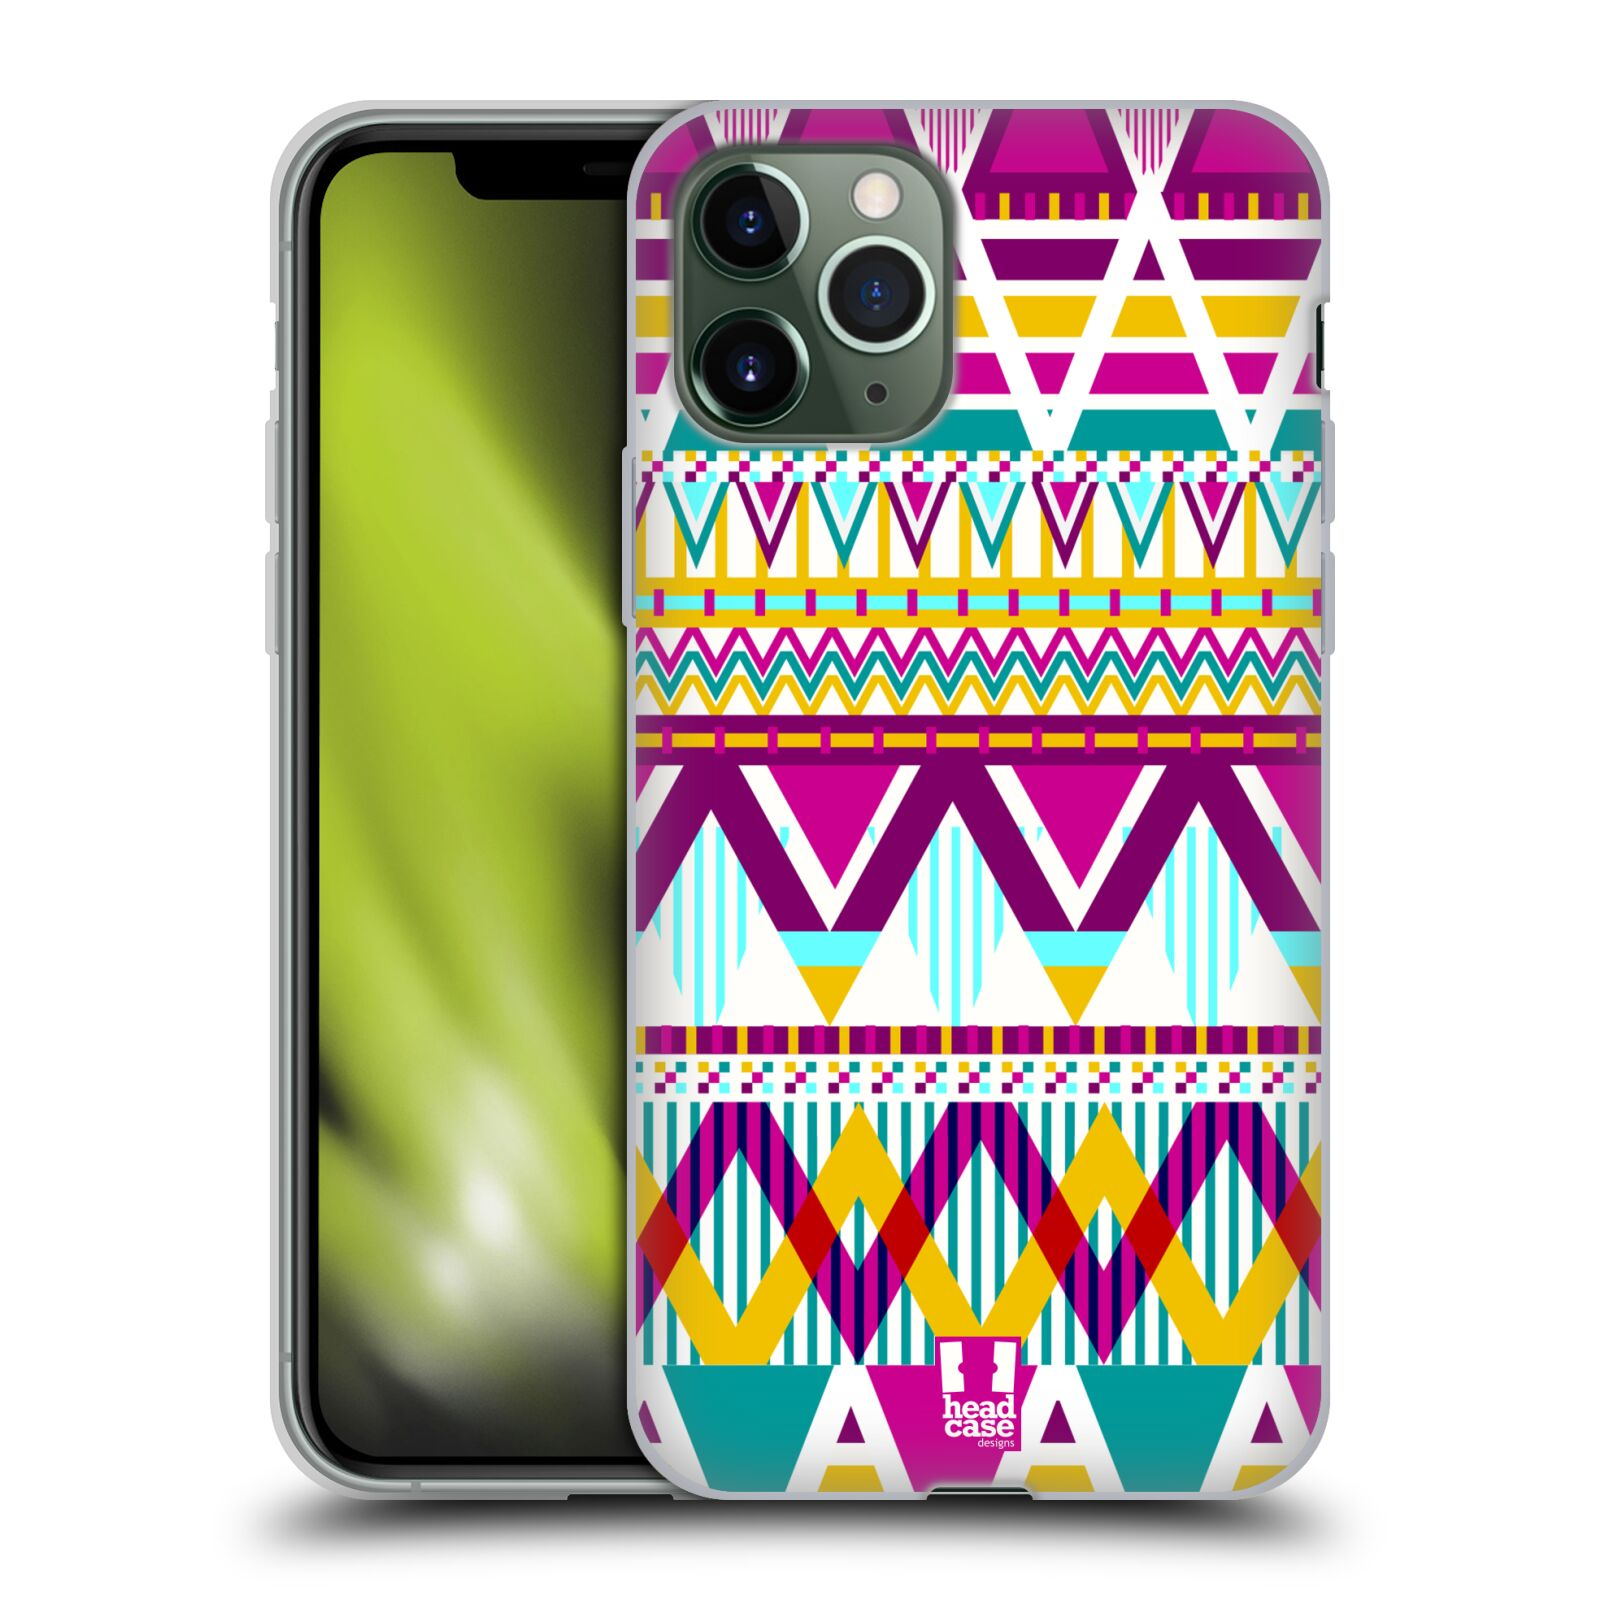 victoria obaly iphone xr | Silikonové pouzdro na mobil Apple iPhone 11 Pro - Head Case - AZTEC SUGARED